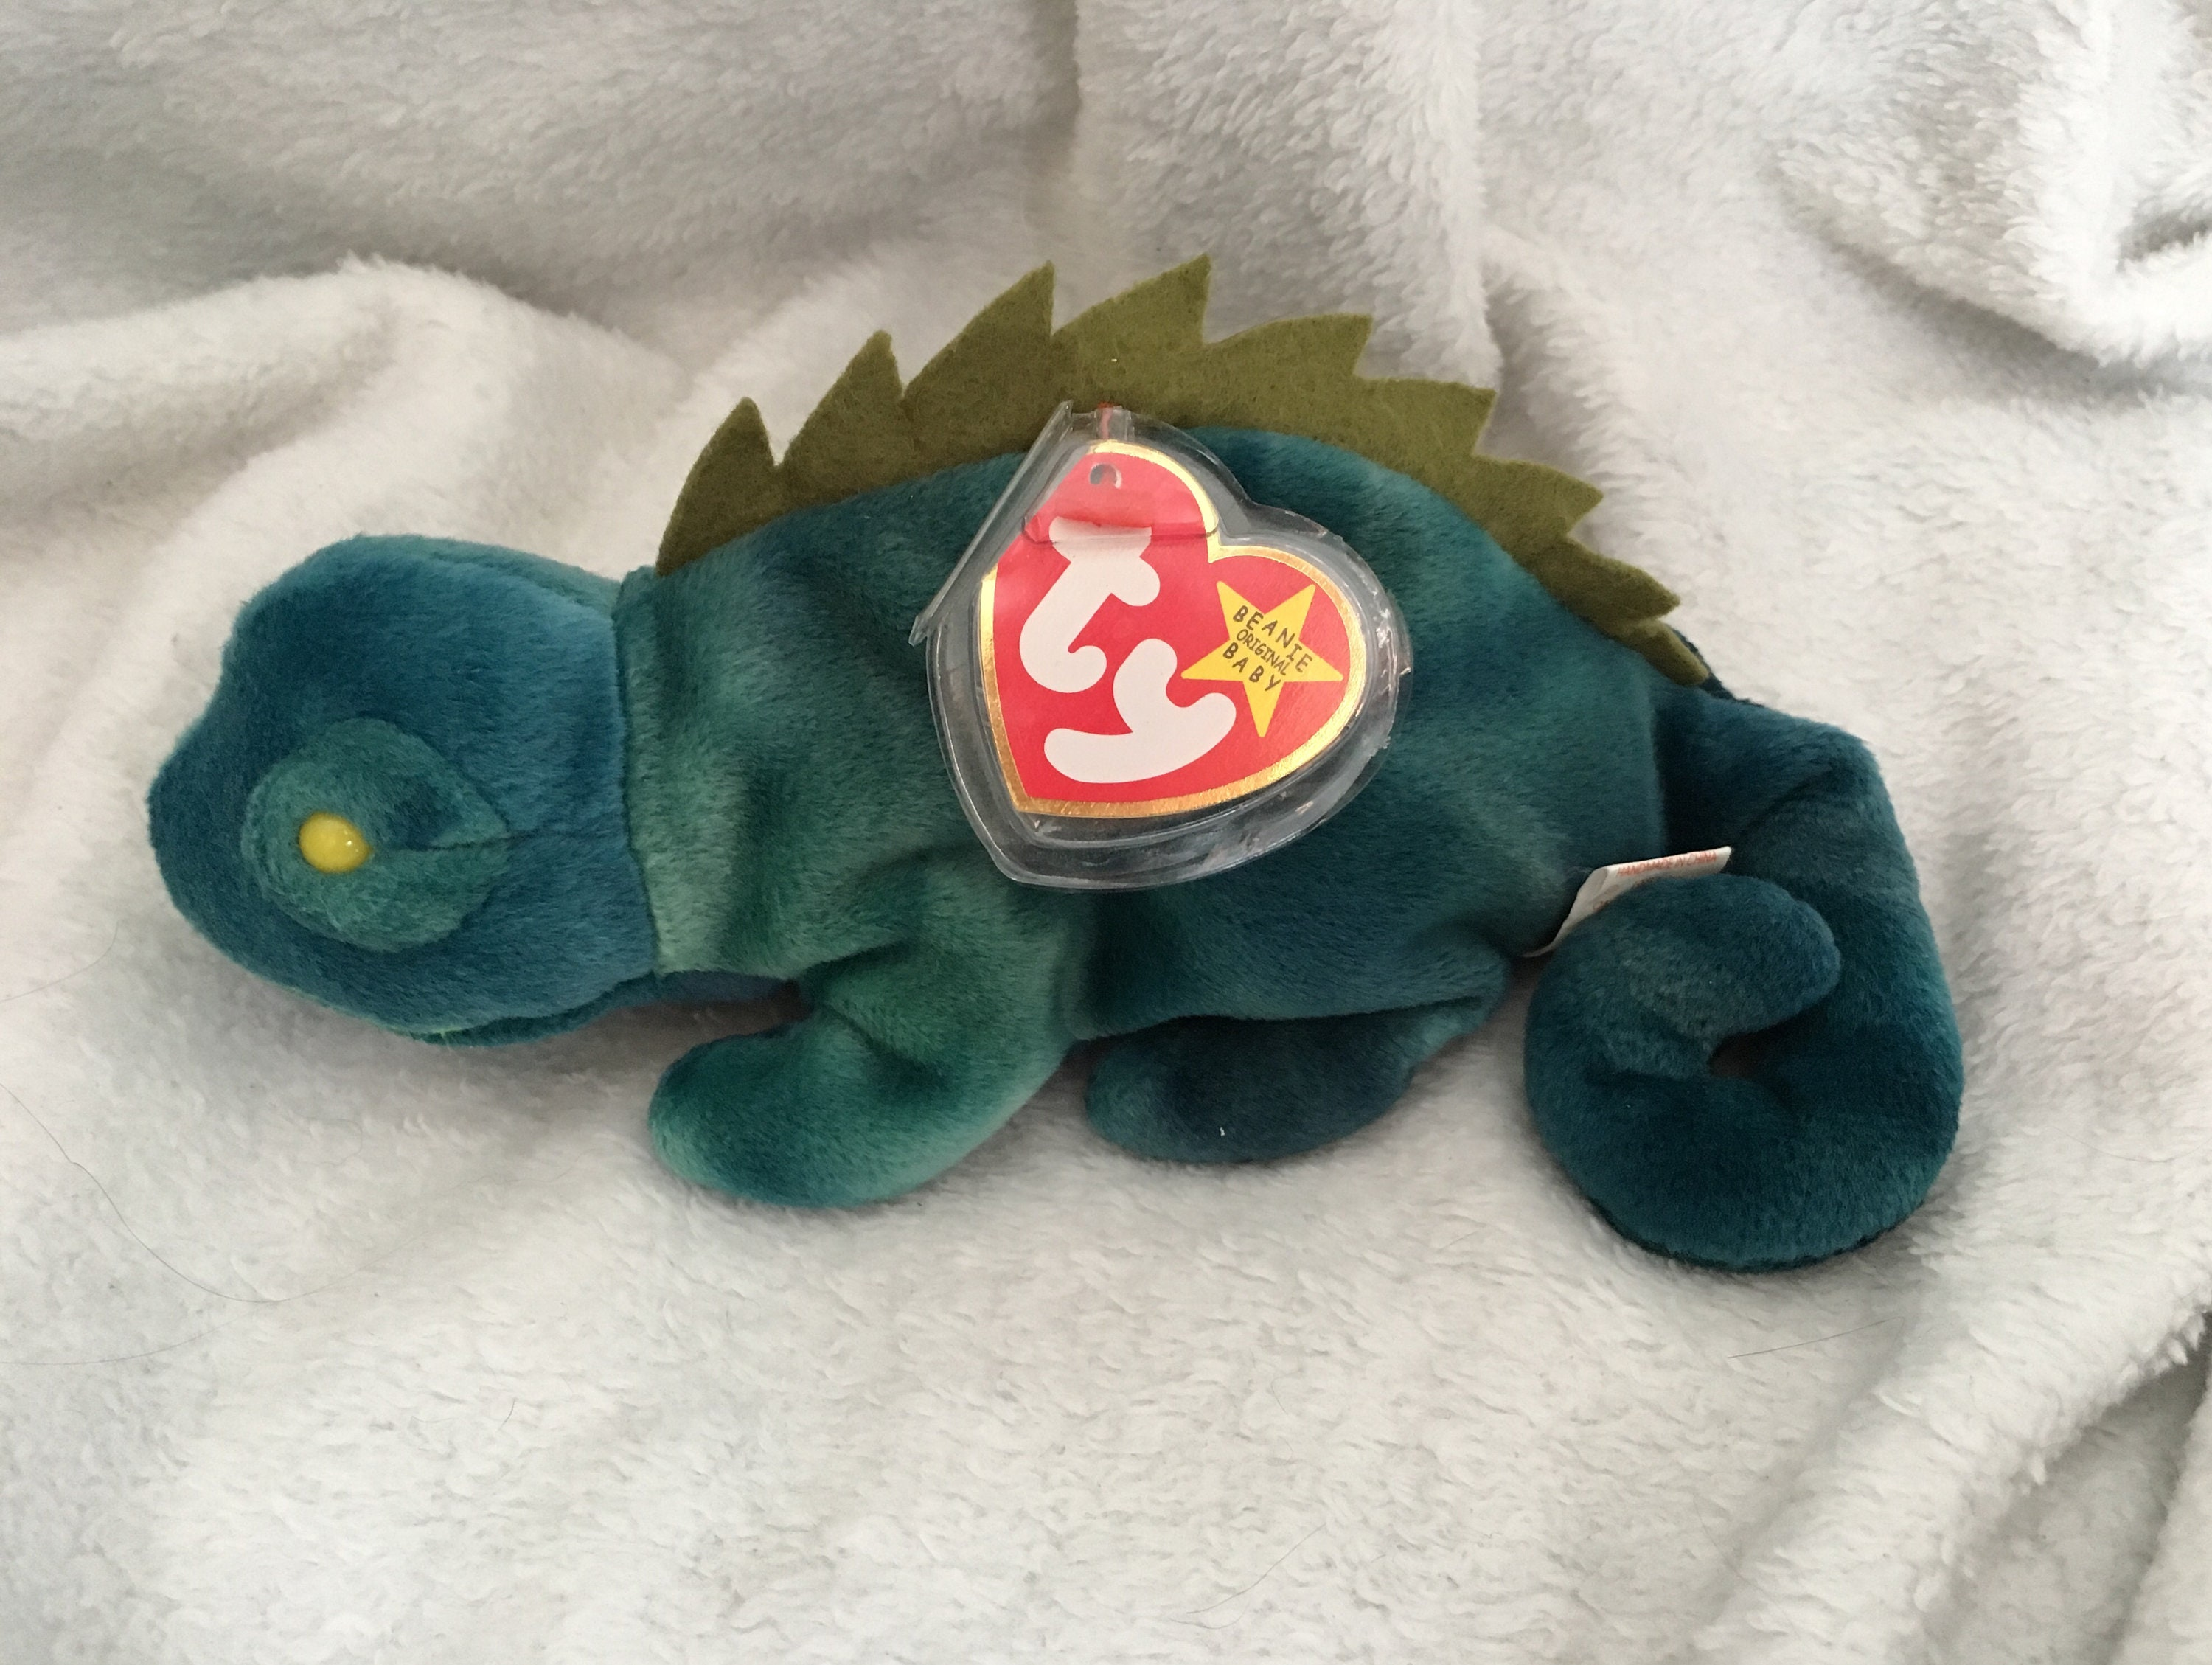 af431a40ed8 Iggy Beanie Baby MINT CONDITION Collector s Item 60%